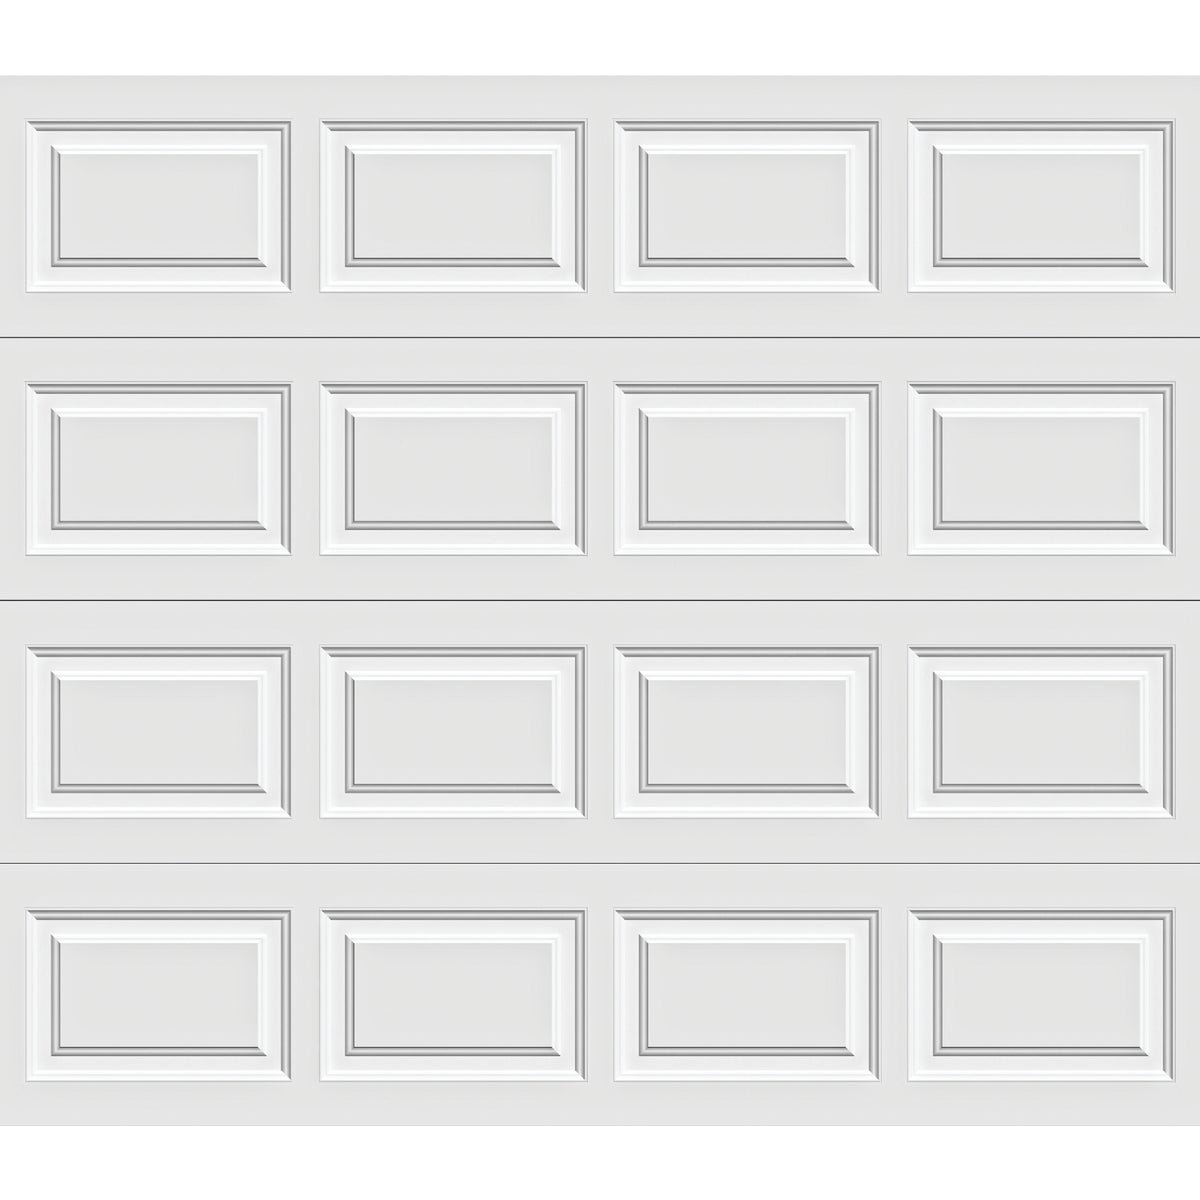 8X7 WHT STL GARAGE DOOR - A632066 6130 by Holmes Garage Doors